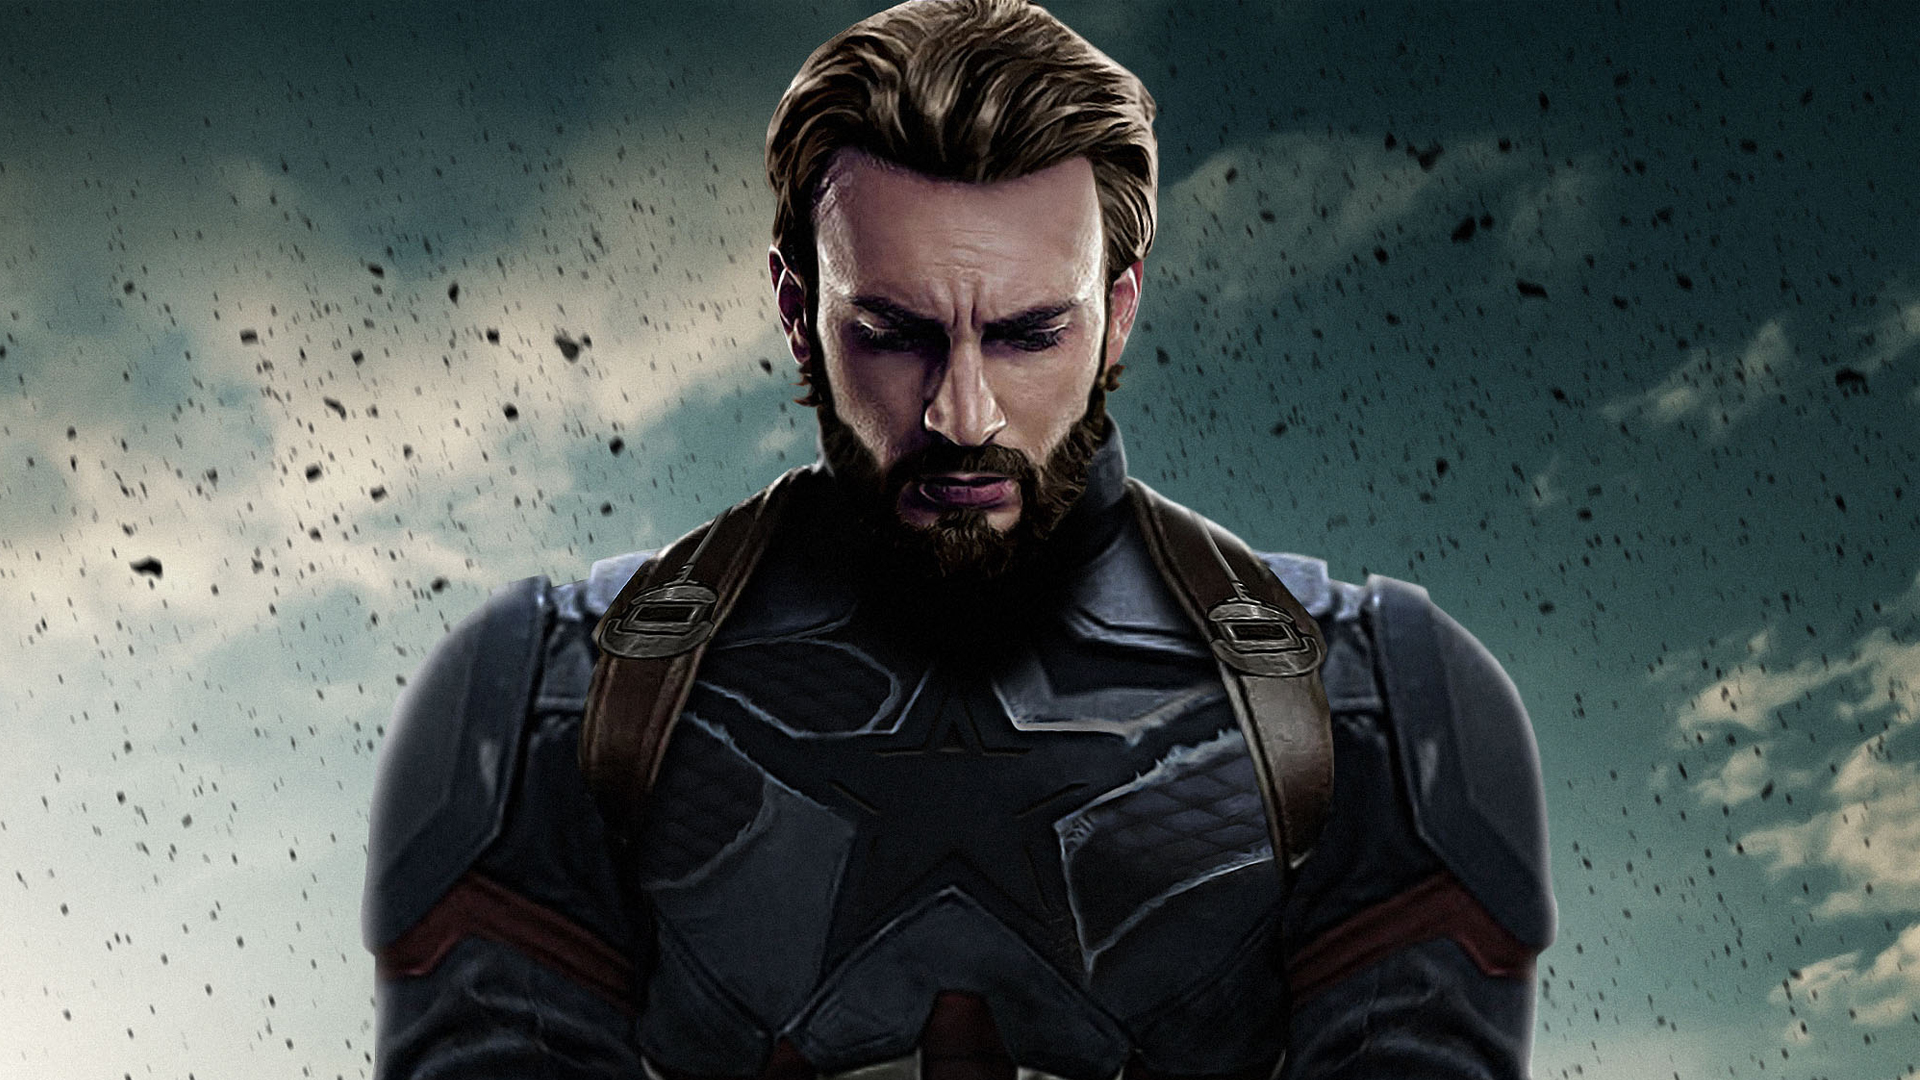 Captain America Avengers Infinity War Wallpapers